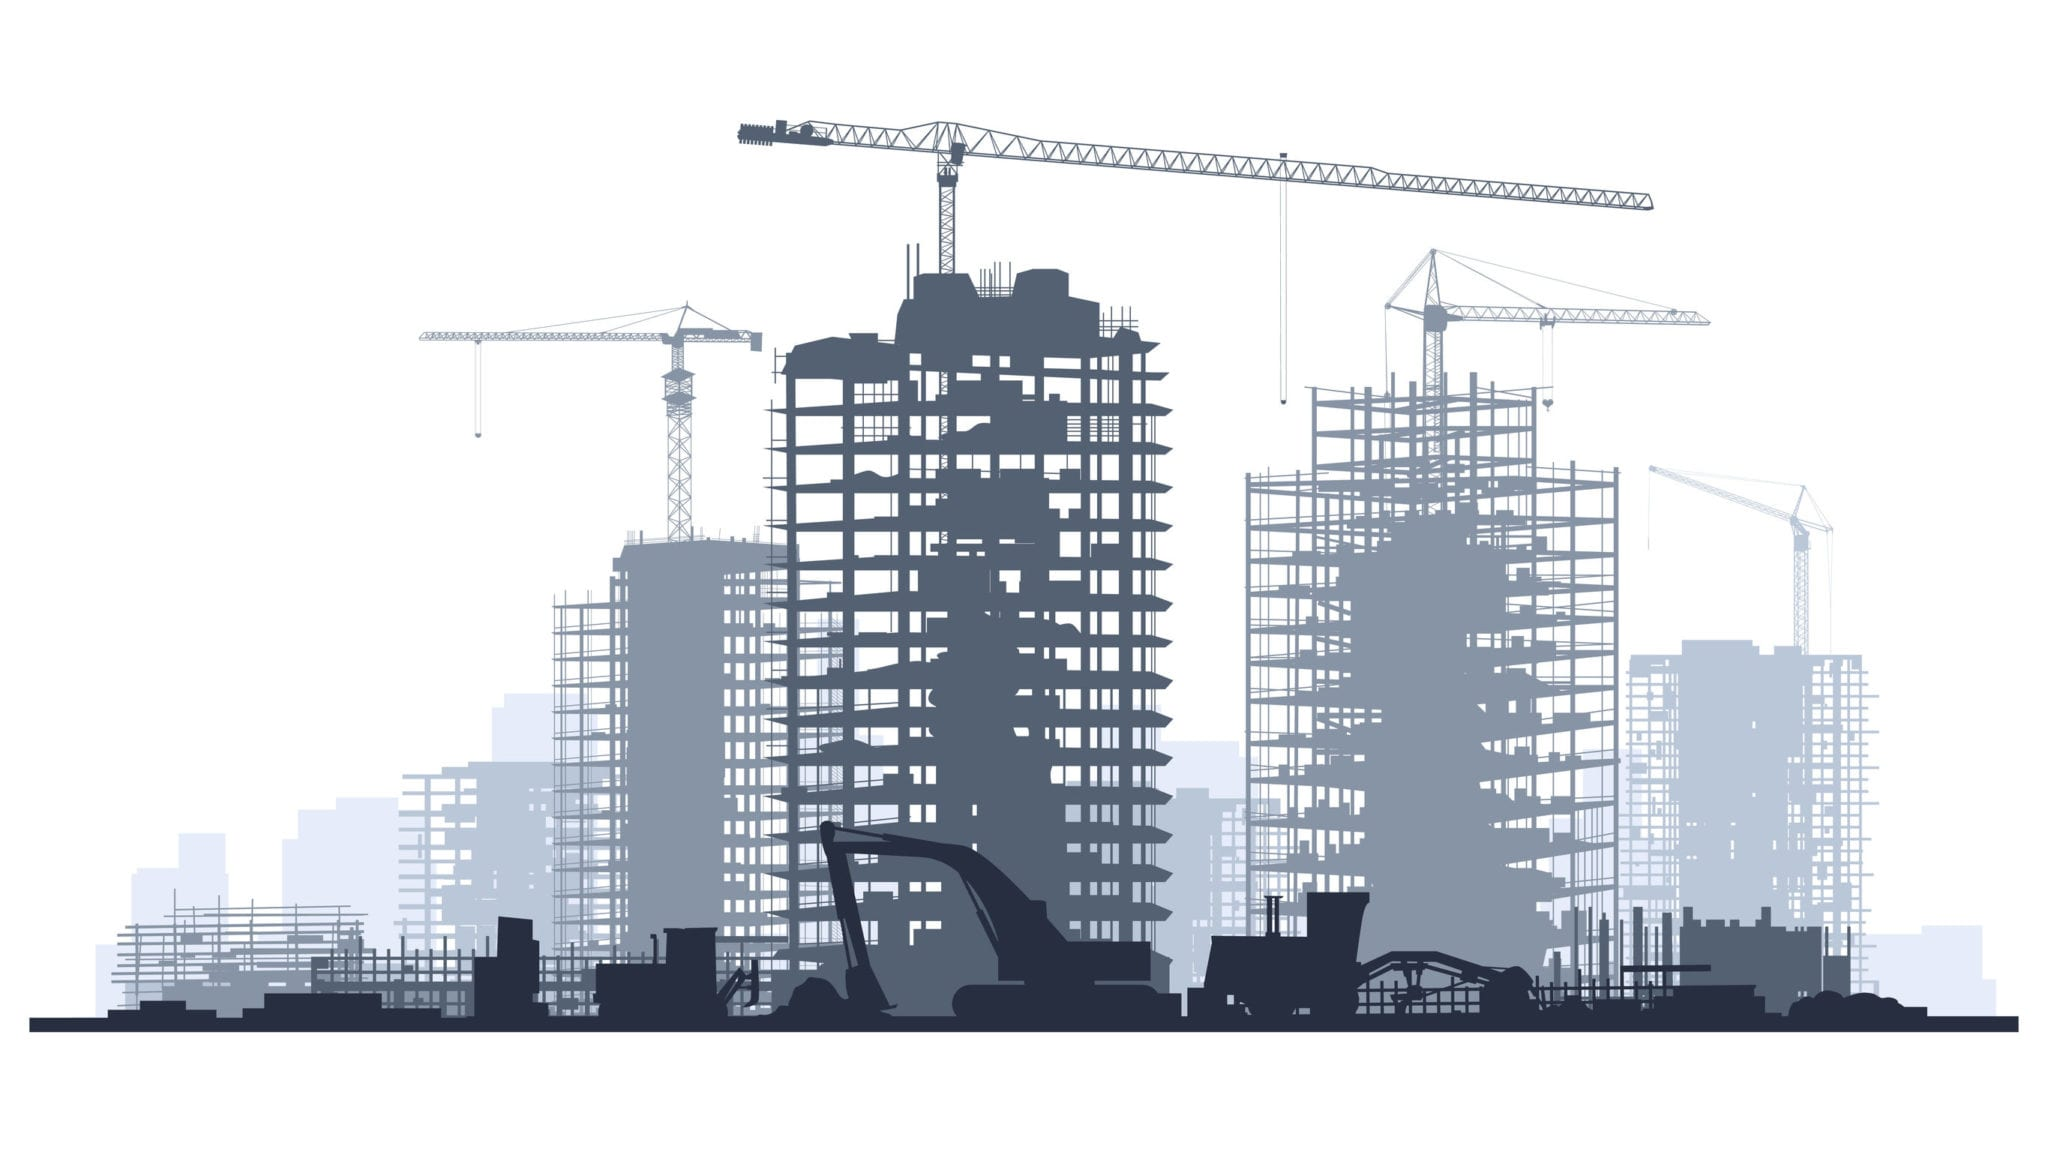 42812769 - line of silhouettes illustration of construction site with cranes and skyscraper with tractors, bulldozers, excavators and grader in blue tone.